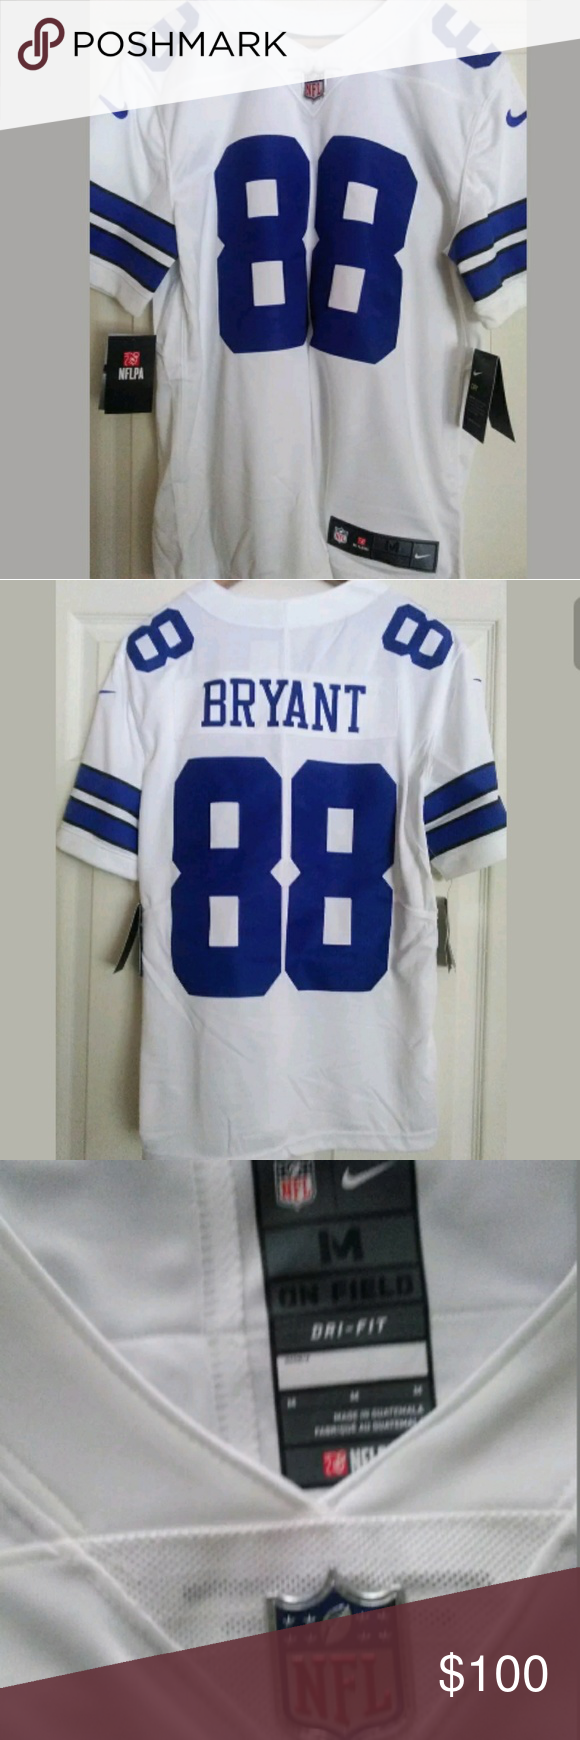 Dallas Cowboys Dez Bryant 88 Nike Stitched Jersey Dallas Cowboys Dez Bryant #88 Nike White Stitched On Field Jersey Men Size Medium Nike Shirts #dezbryantjersey Dallas Cowboys Dez Bryant 88 Nike Stitched Jersey Dallas Cowboys Dez Bryant #88 Nike White Stitched On Field Jersey Men Size Medium Nike Shirts #dezbryant Dallas Cowboys Dez Bryant 88 Nike Stitched Jersey Dallas Cowboys Dez Bryant #88 Nike White Stitched On Field Jersey Men Size Medium Nike Shirts #dezbryantjersey Dallas Cowboys Dez Brya #dezbryant